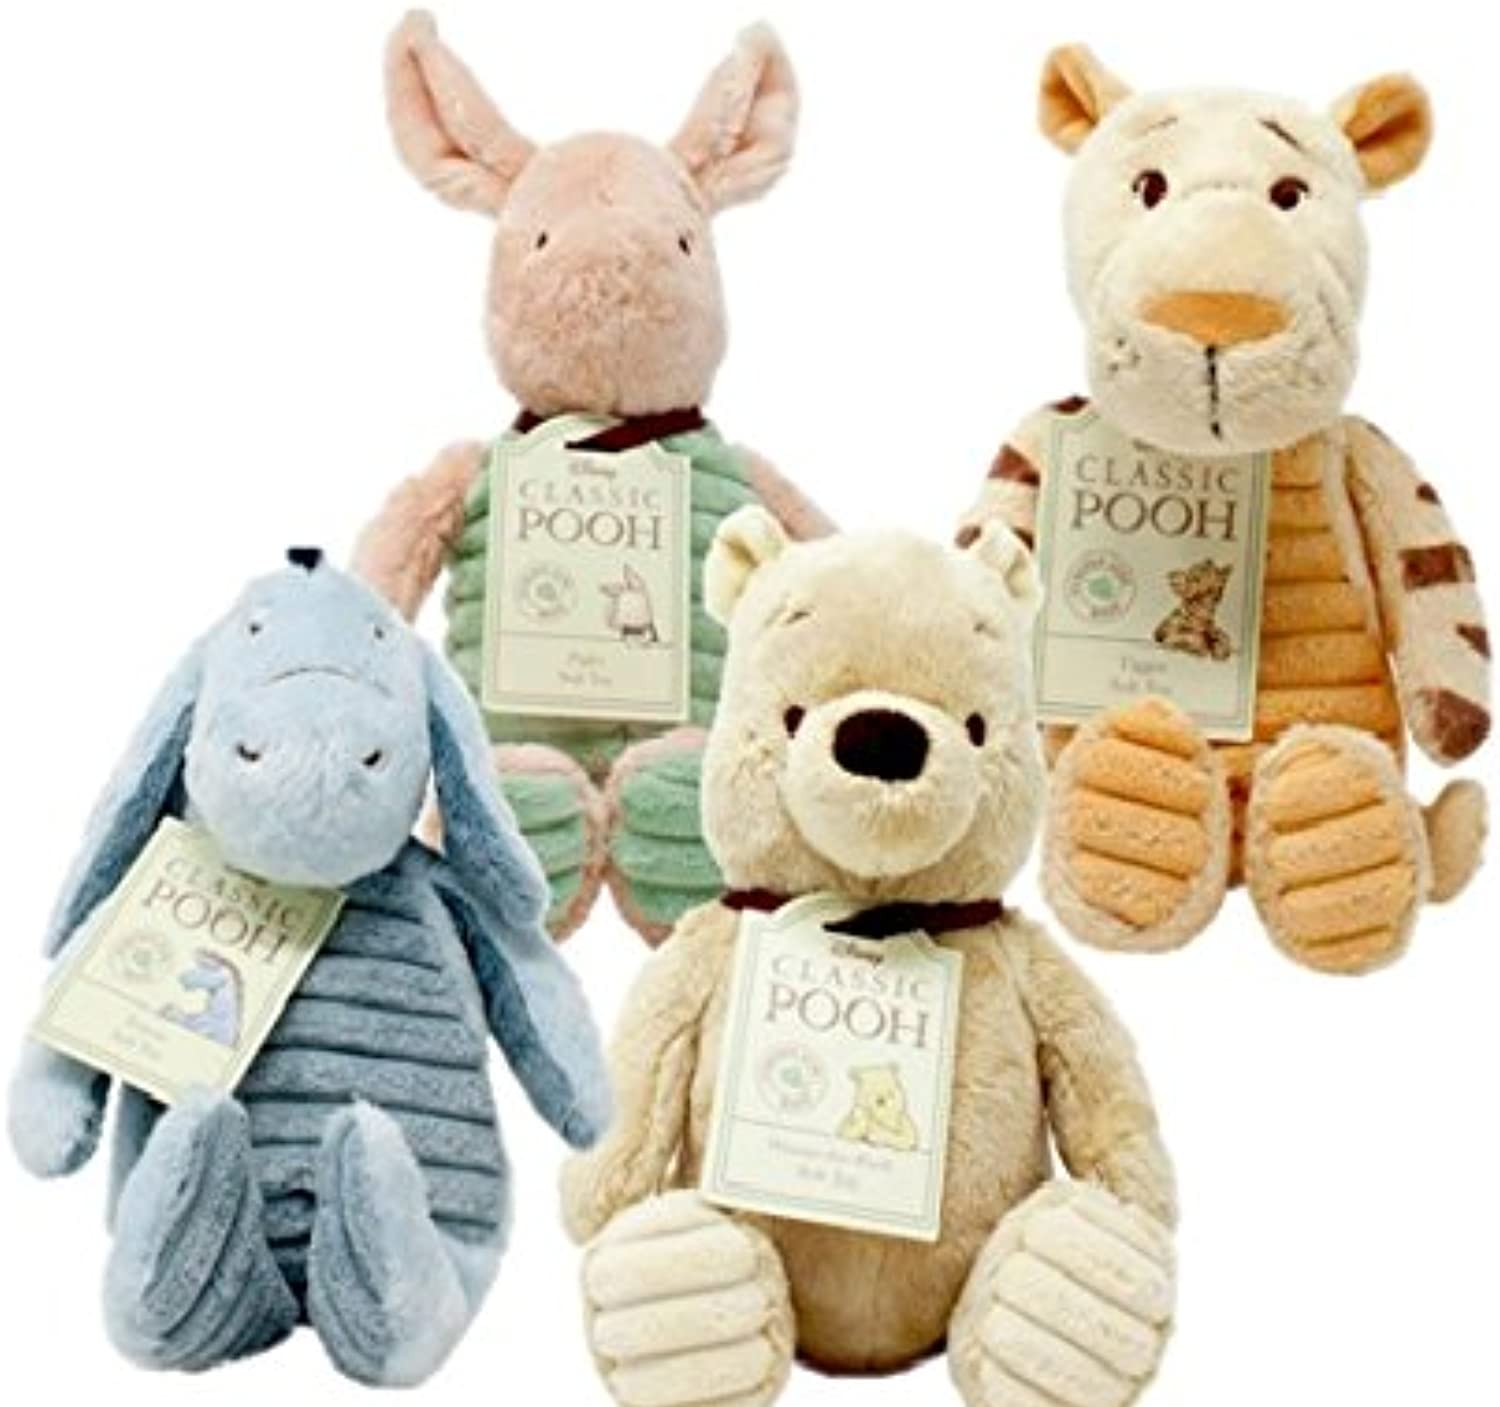 Amy Karyn Disney Winnie The Pooh Character Set of 4; Tigger, Piglet, Eeyore e Pooh - Hundrosso Acre Wood - Soft giocattolo